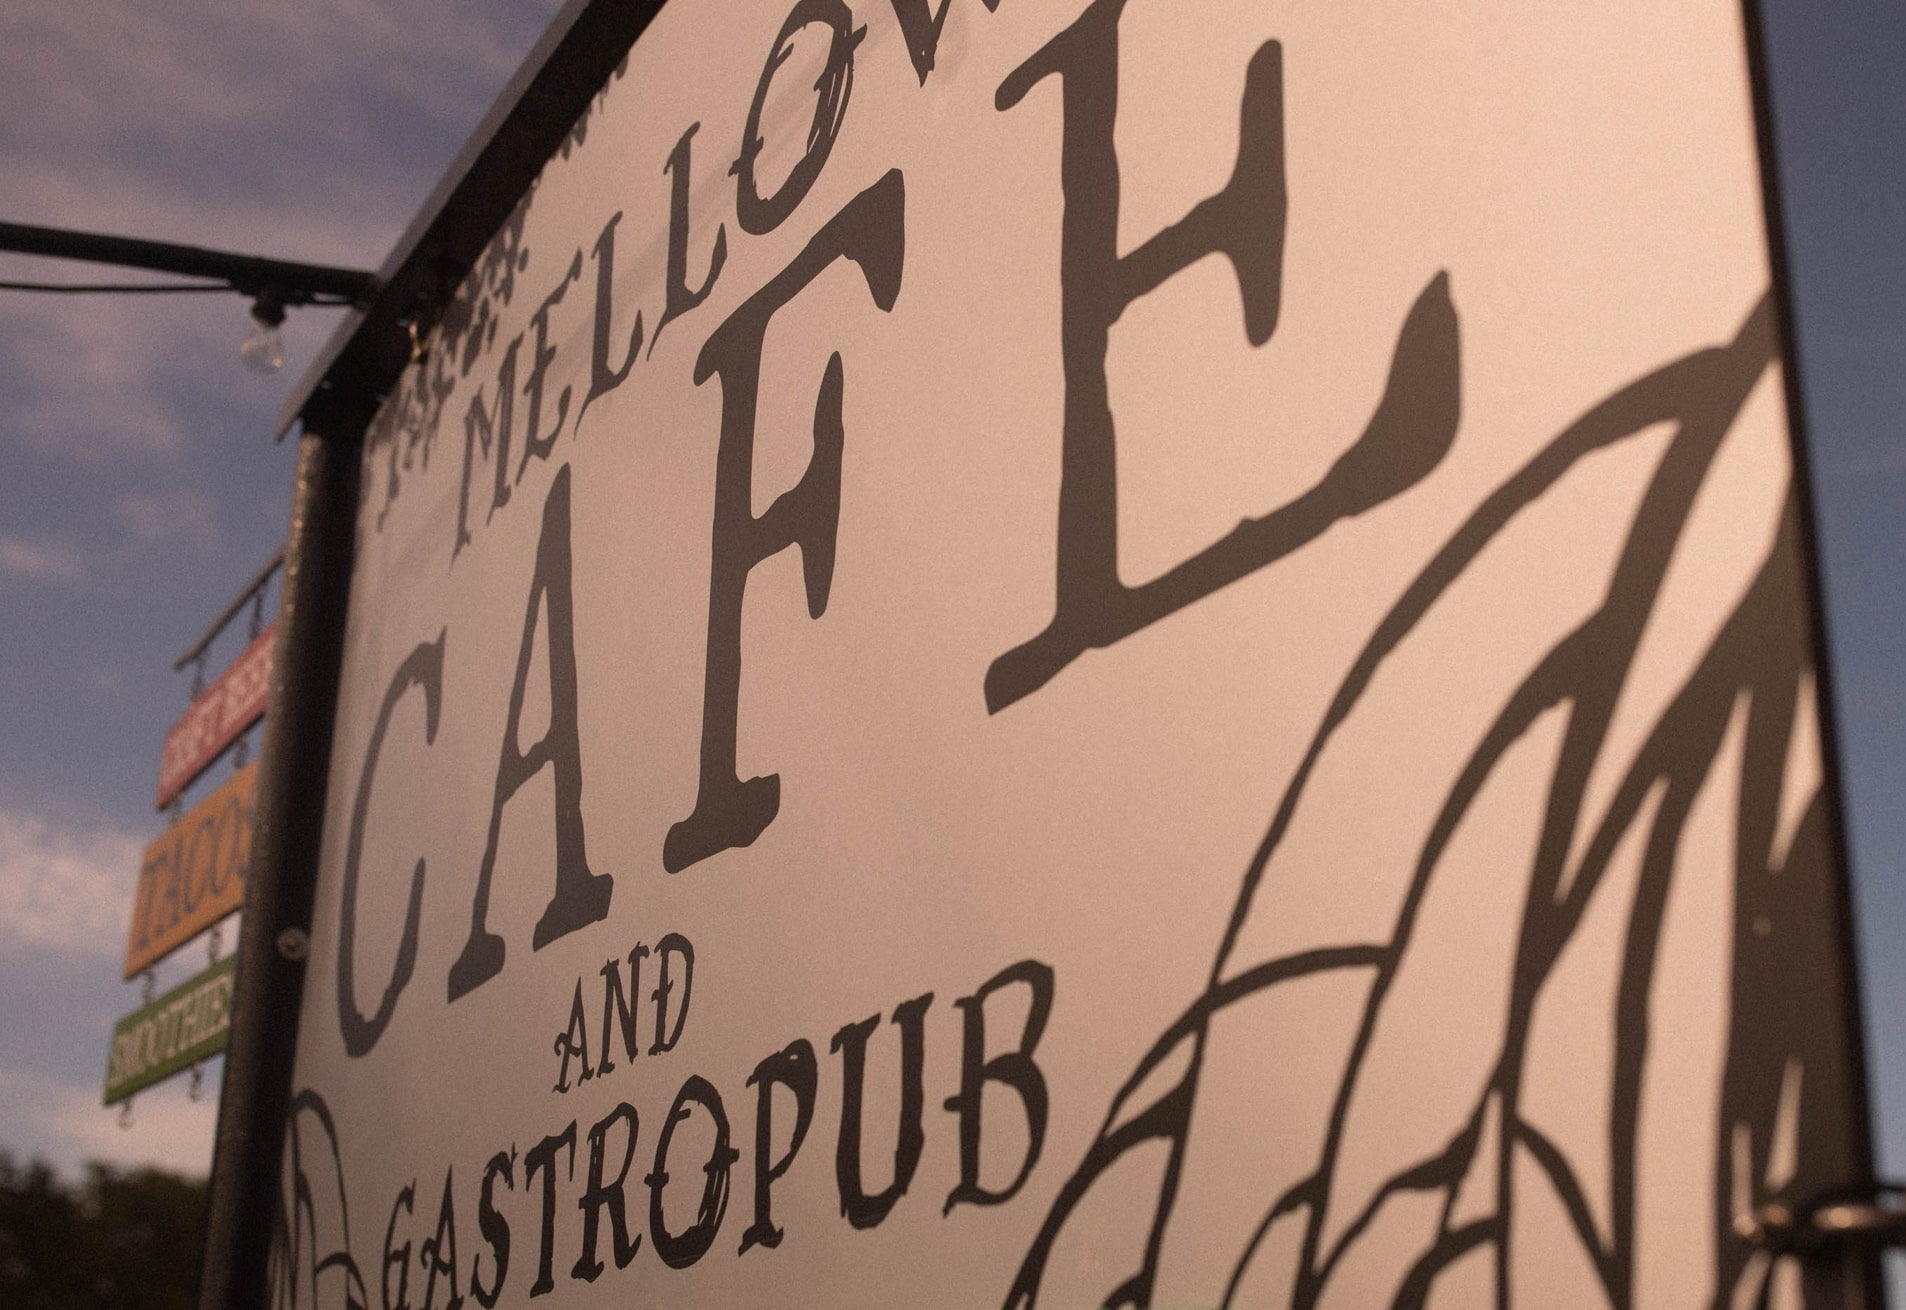 Mellow Cafe and Gastropub Sign